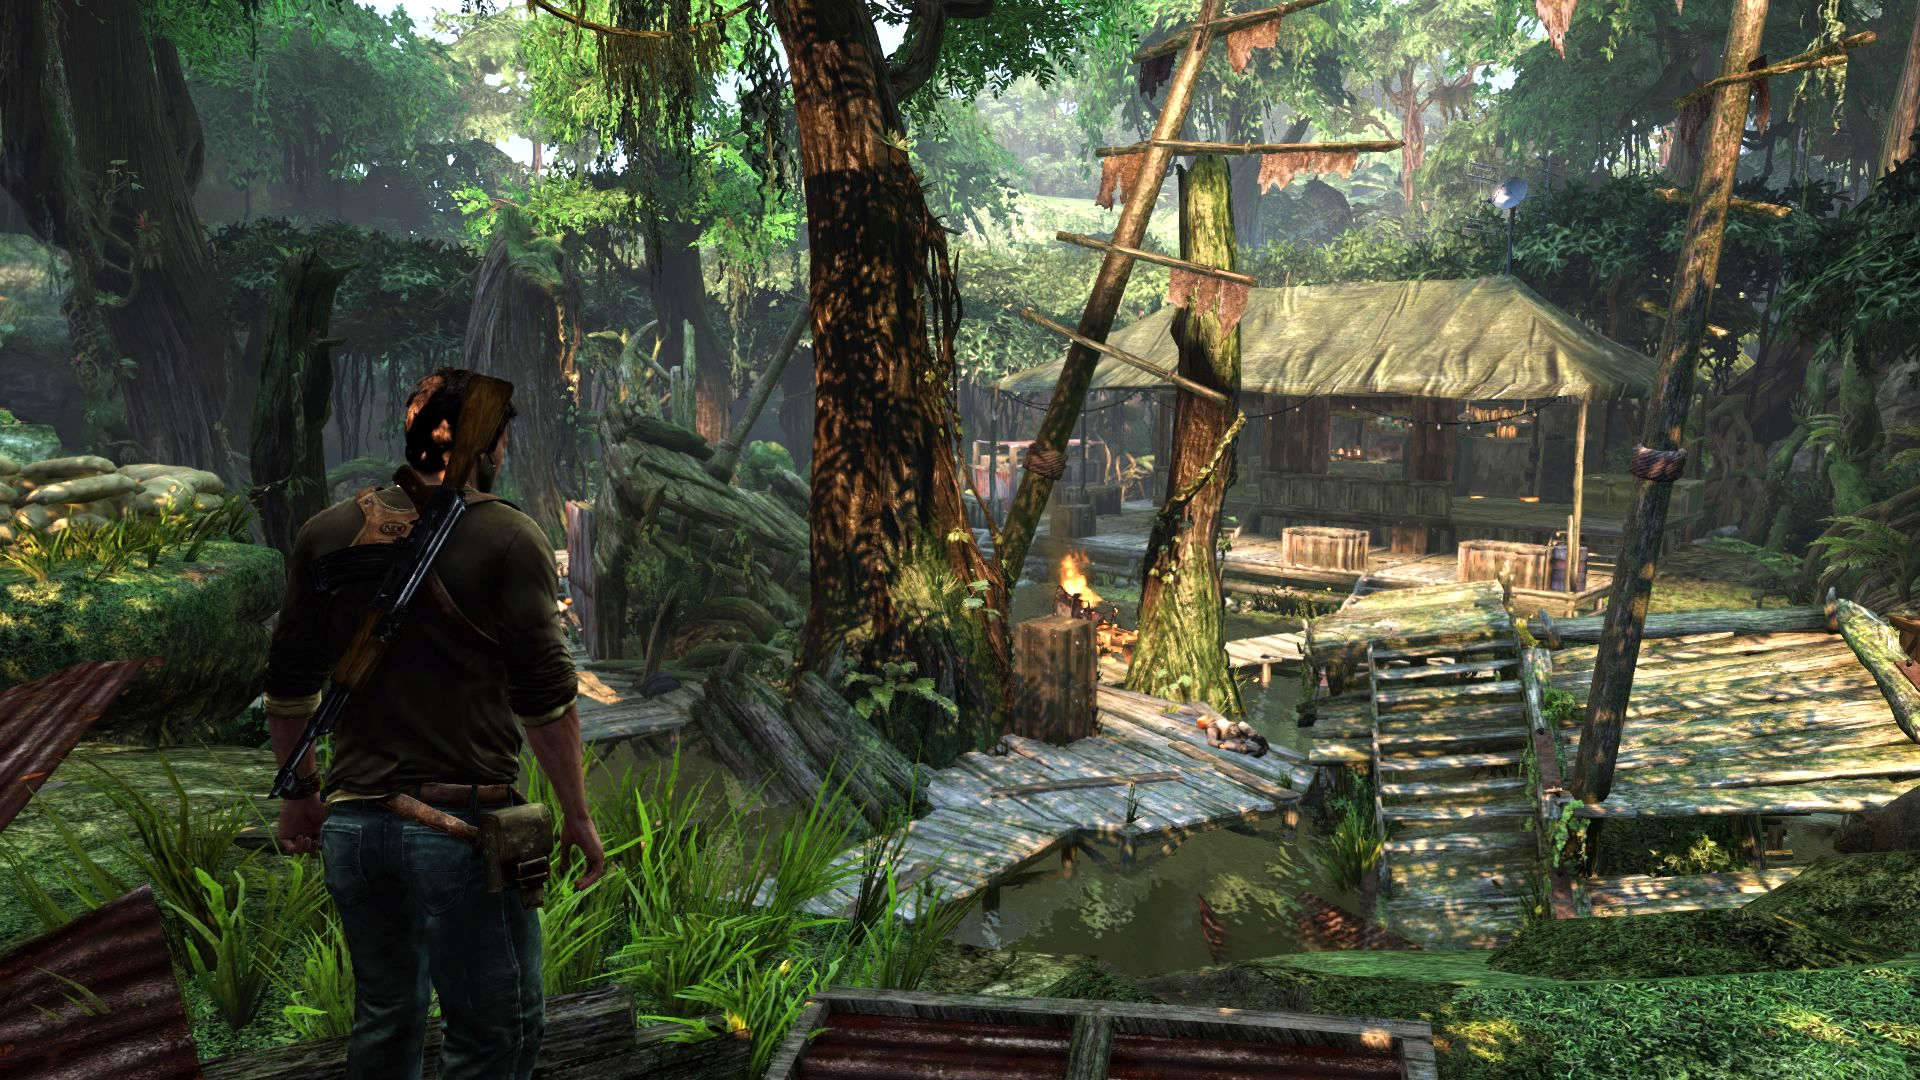 Uncharted 2 - Major battle here. Notice the rotting ship with a tree growing out of it? That must have been some tidal; wave!